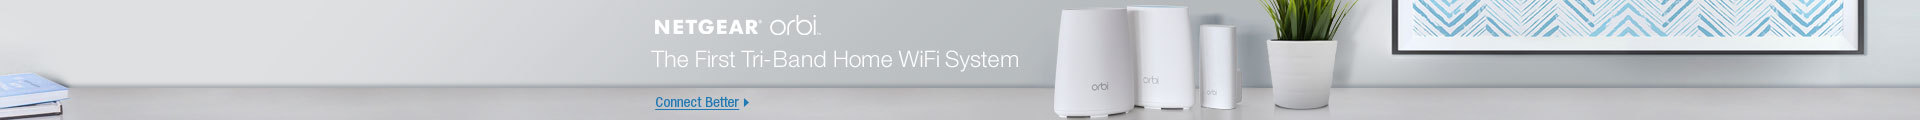 The First Tri-Band Home WiFi System